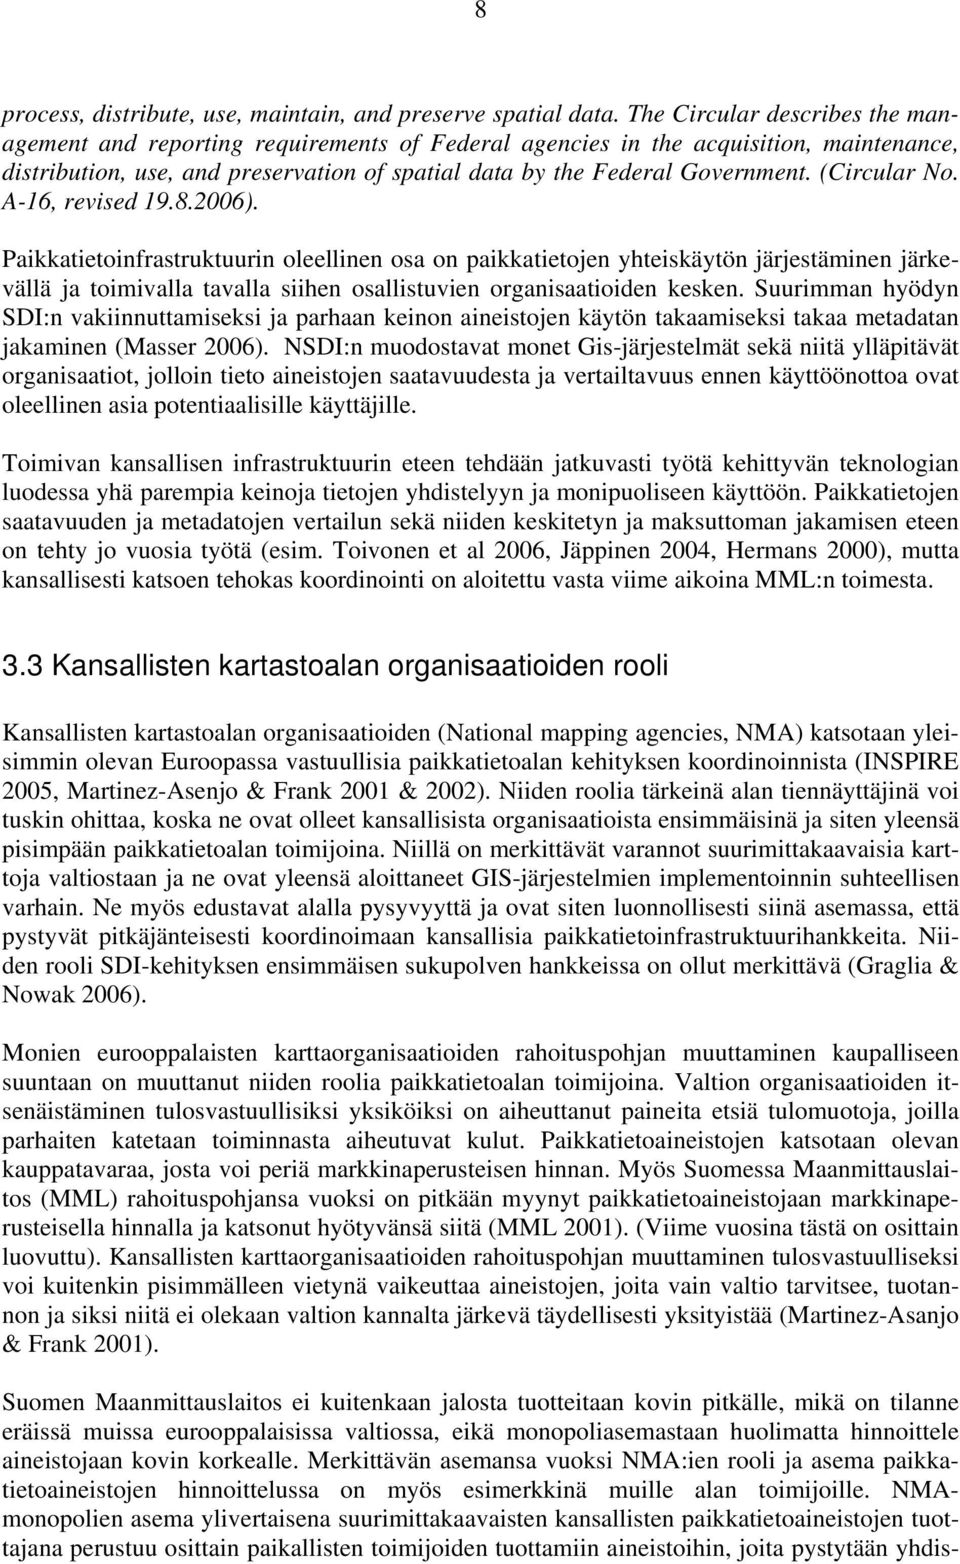 (Circular No. A-16, revised 19.8.2006).